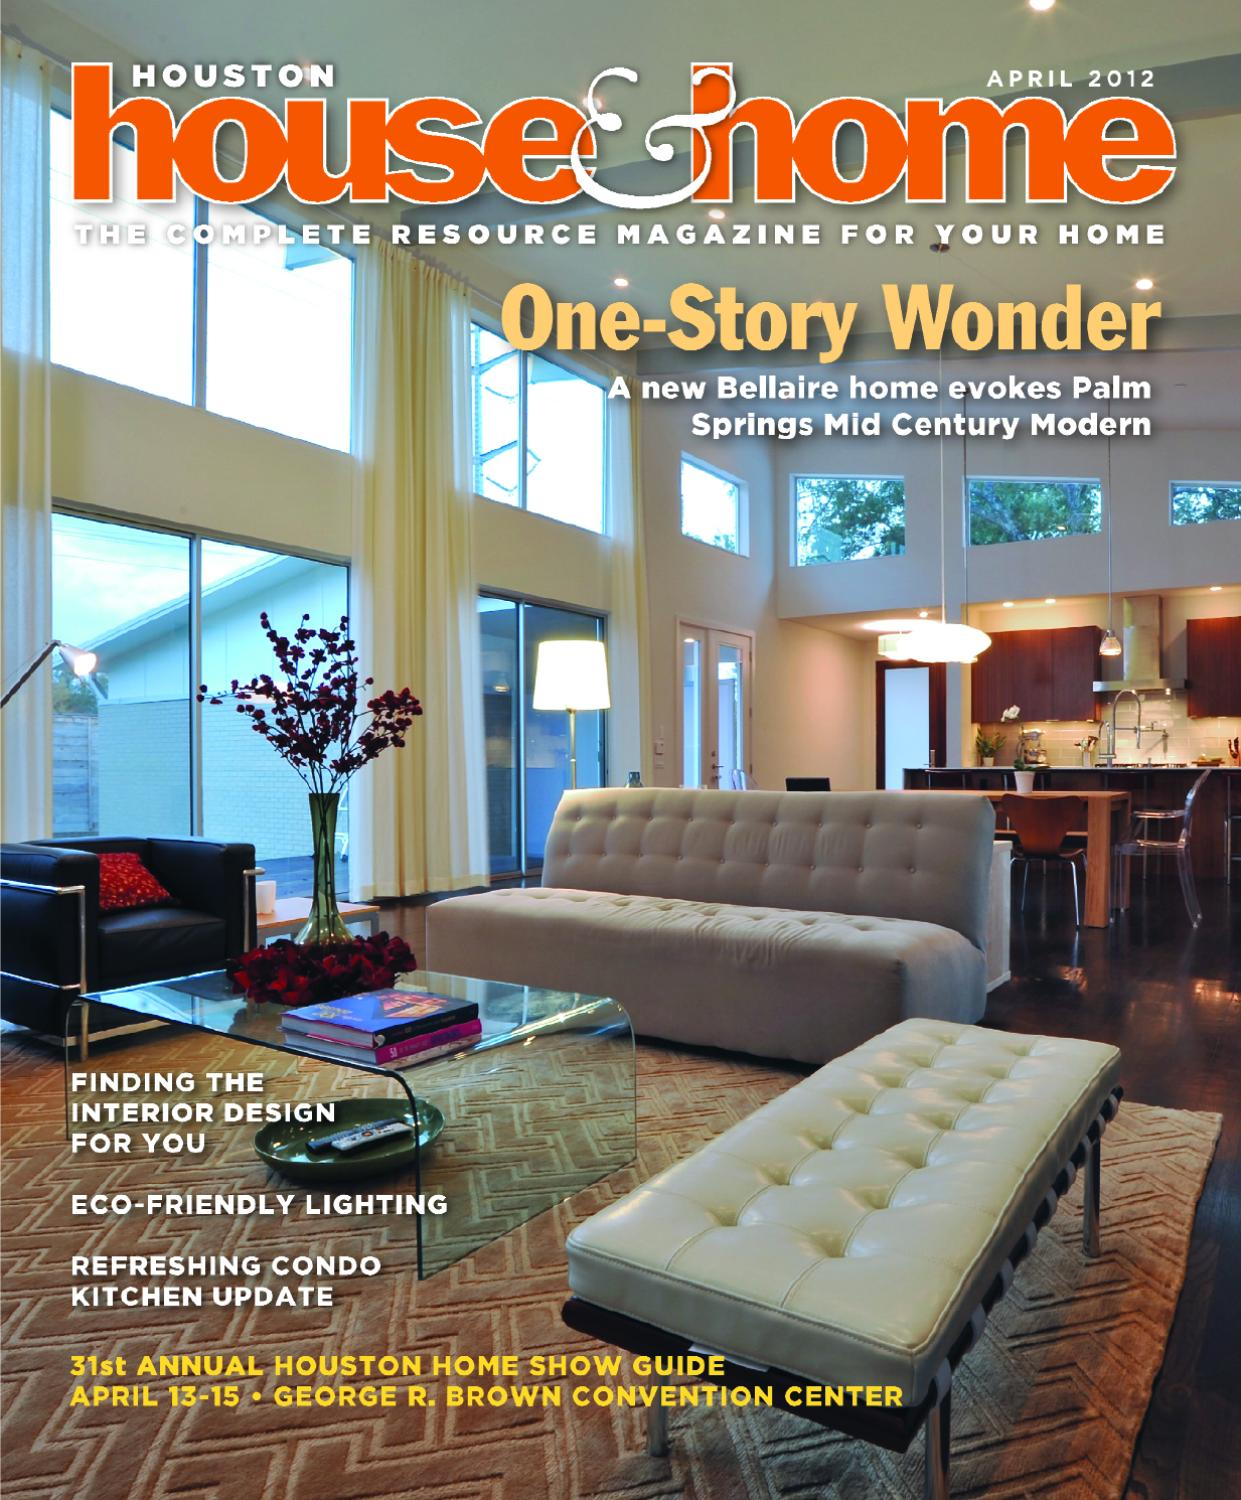 Houston House Amp Home Magazine April 2012 Issue By Houston